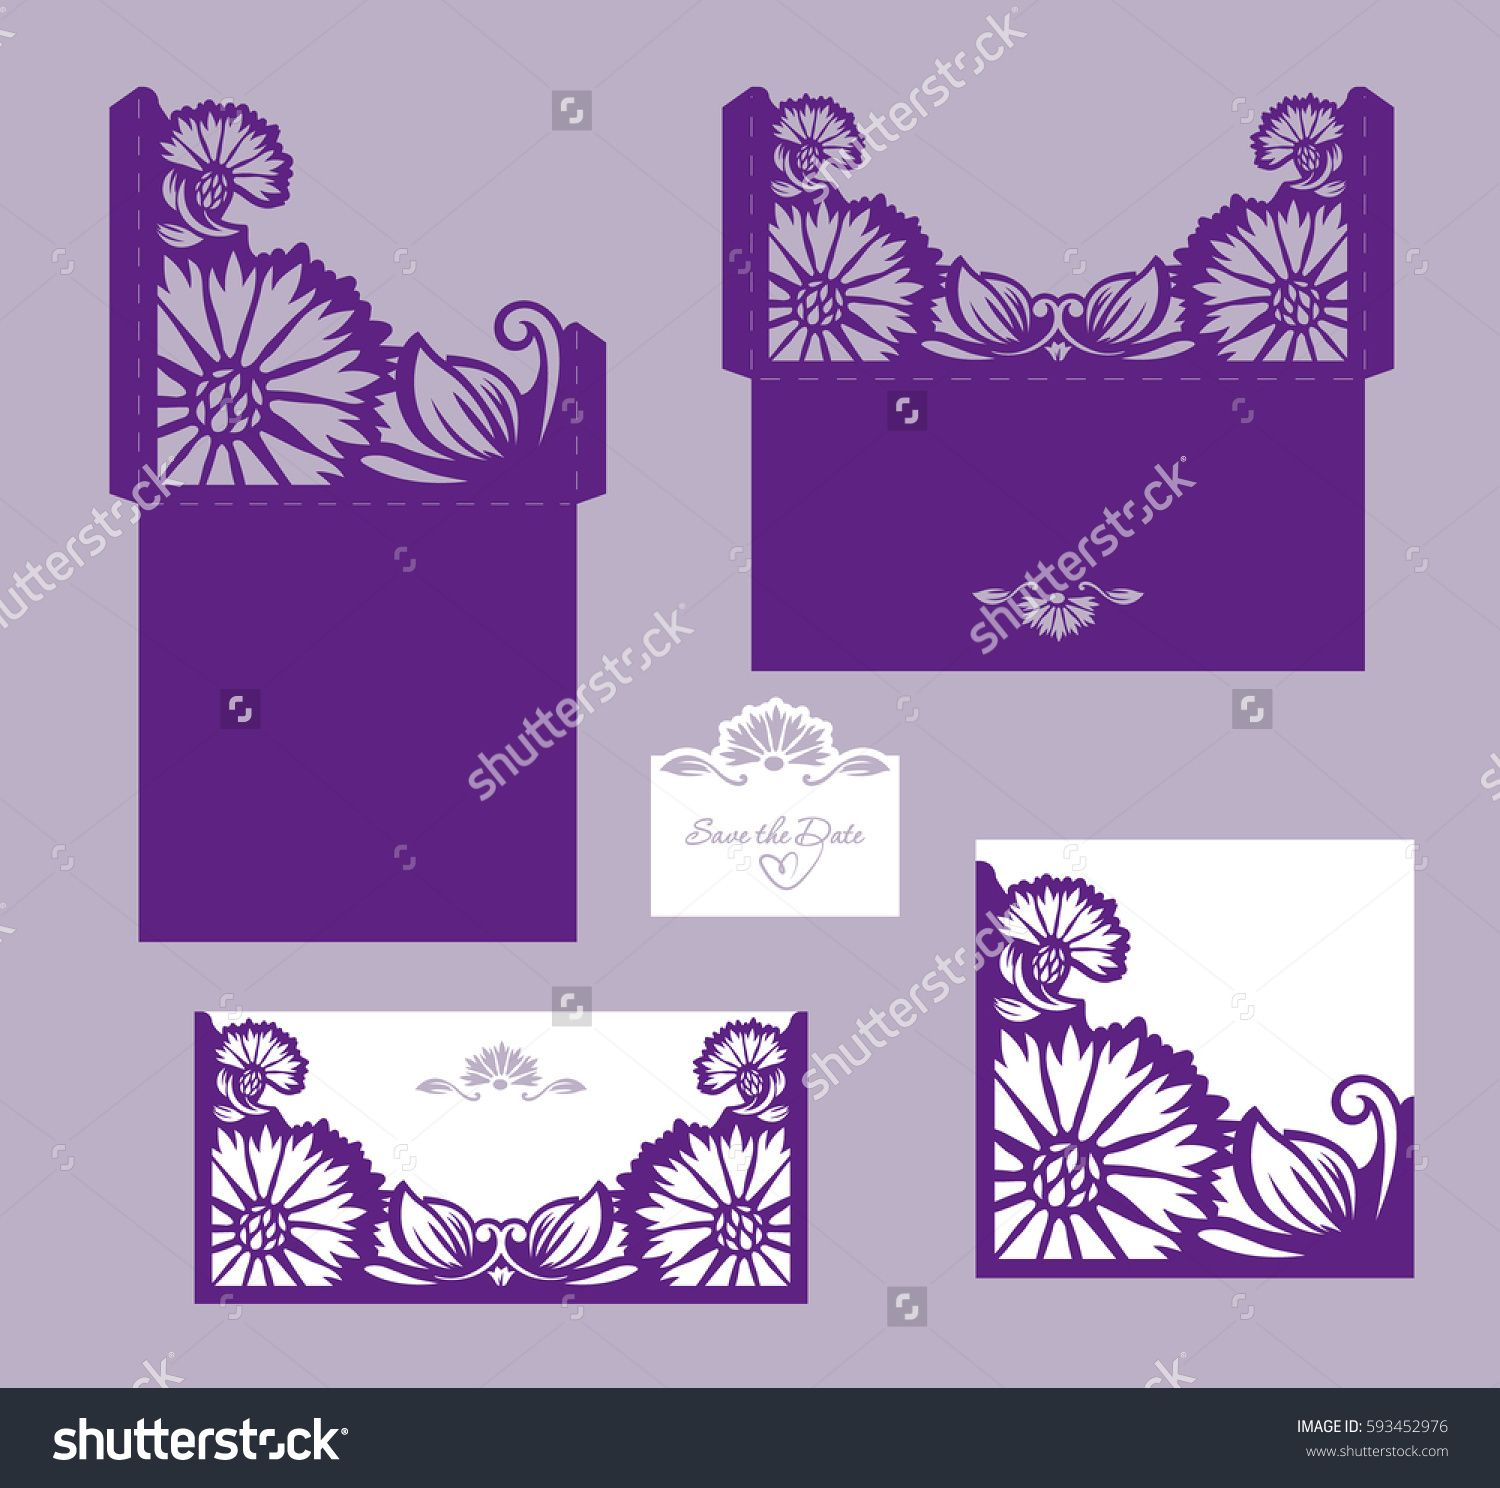 Set of laser cut wedding invitation card template vector. Die cut paper card with cornflowers. Cutout paper gate fold card for laser cutting or die cutting template.